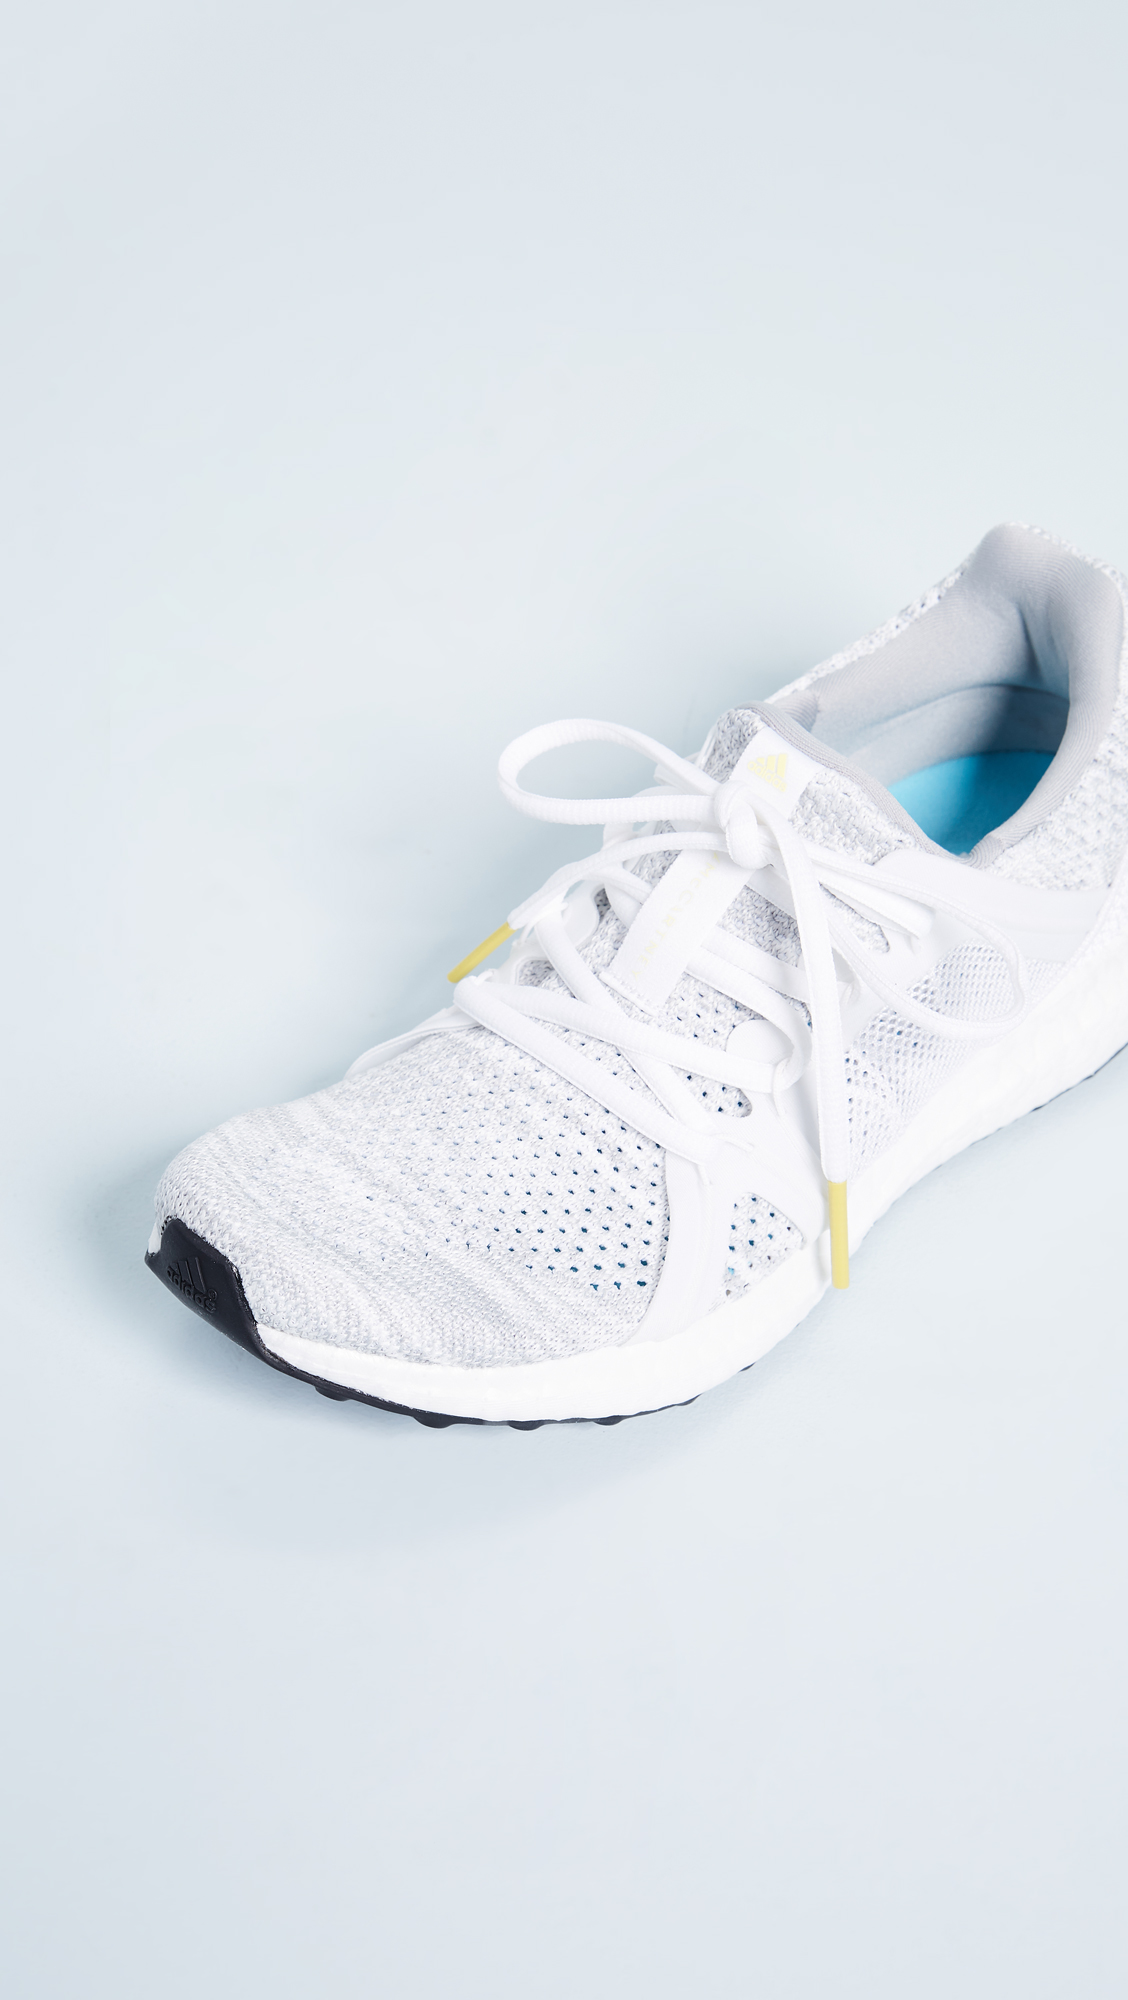 new concept 29cb3 ef543 adidas by Stella McCartney UltraBOOST PARLEY Sneakers   SHOPBOP